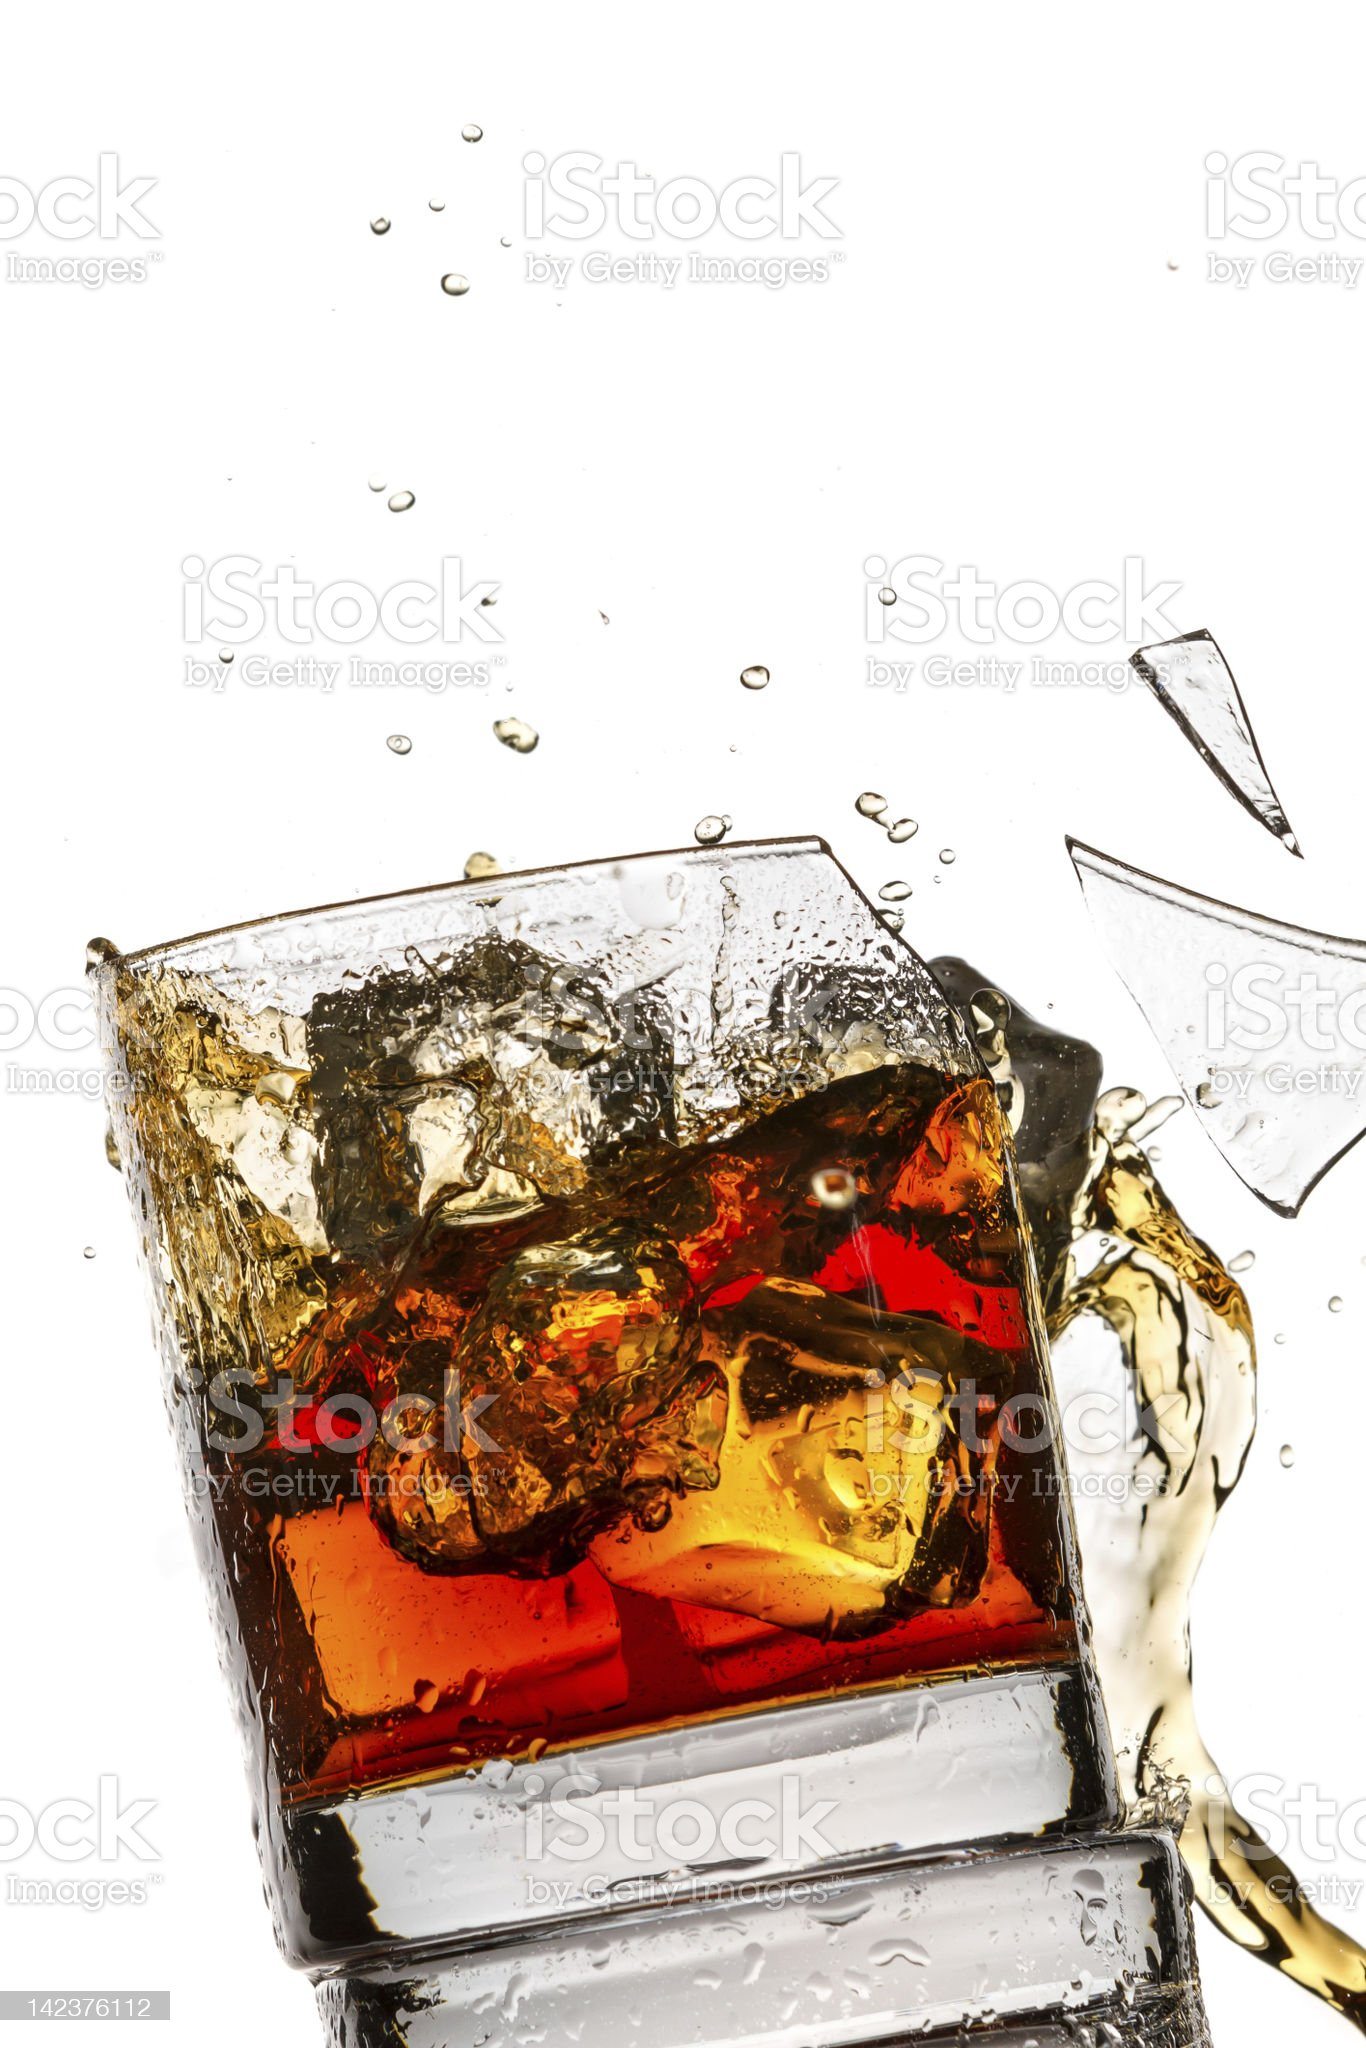 Ice cubes breaking whisky glass filled with bourbon royalty-free stock photo